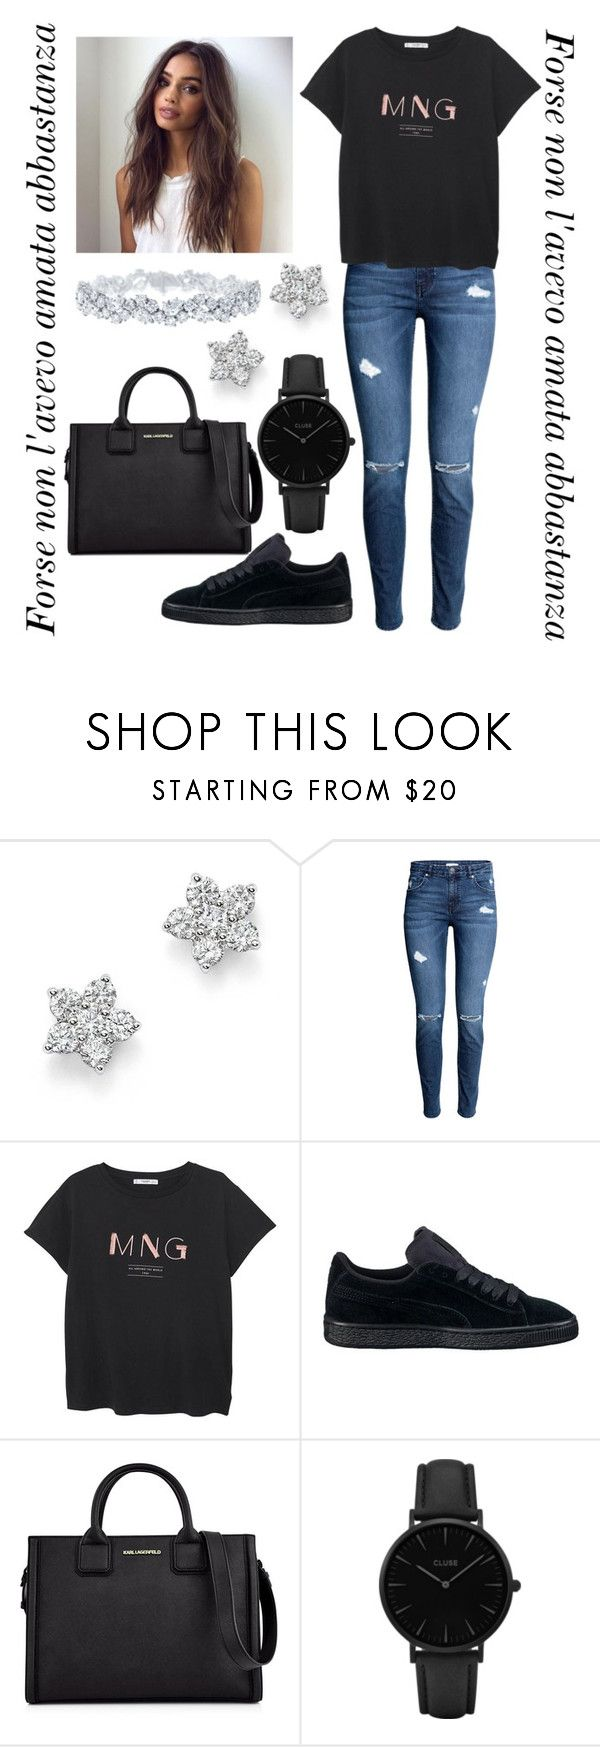 """""""#56"""" by mariangela06 ❤ liked on Polyvore featuring Bloomingdale's, H&M, MANGO, Karl Lagerfeld, CLUSE, Harry Winston, contest, firstdayofschool, polyvorecontest and WardrobeStaples"""